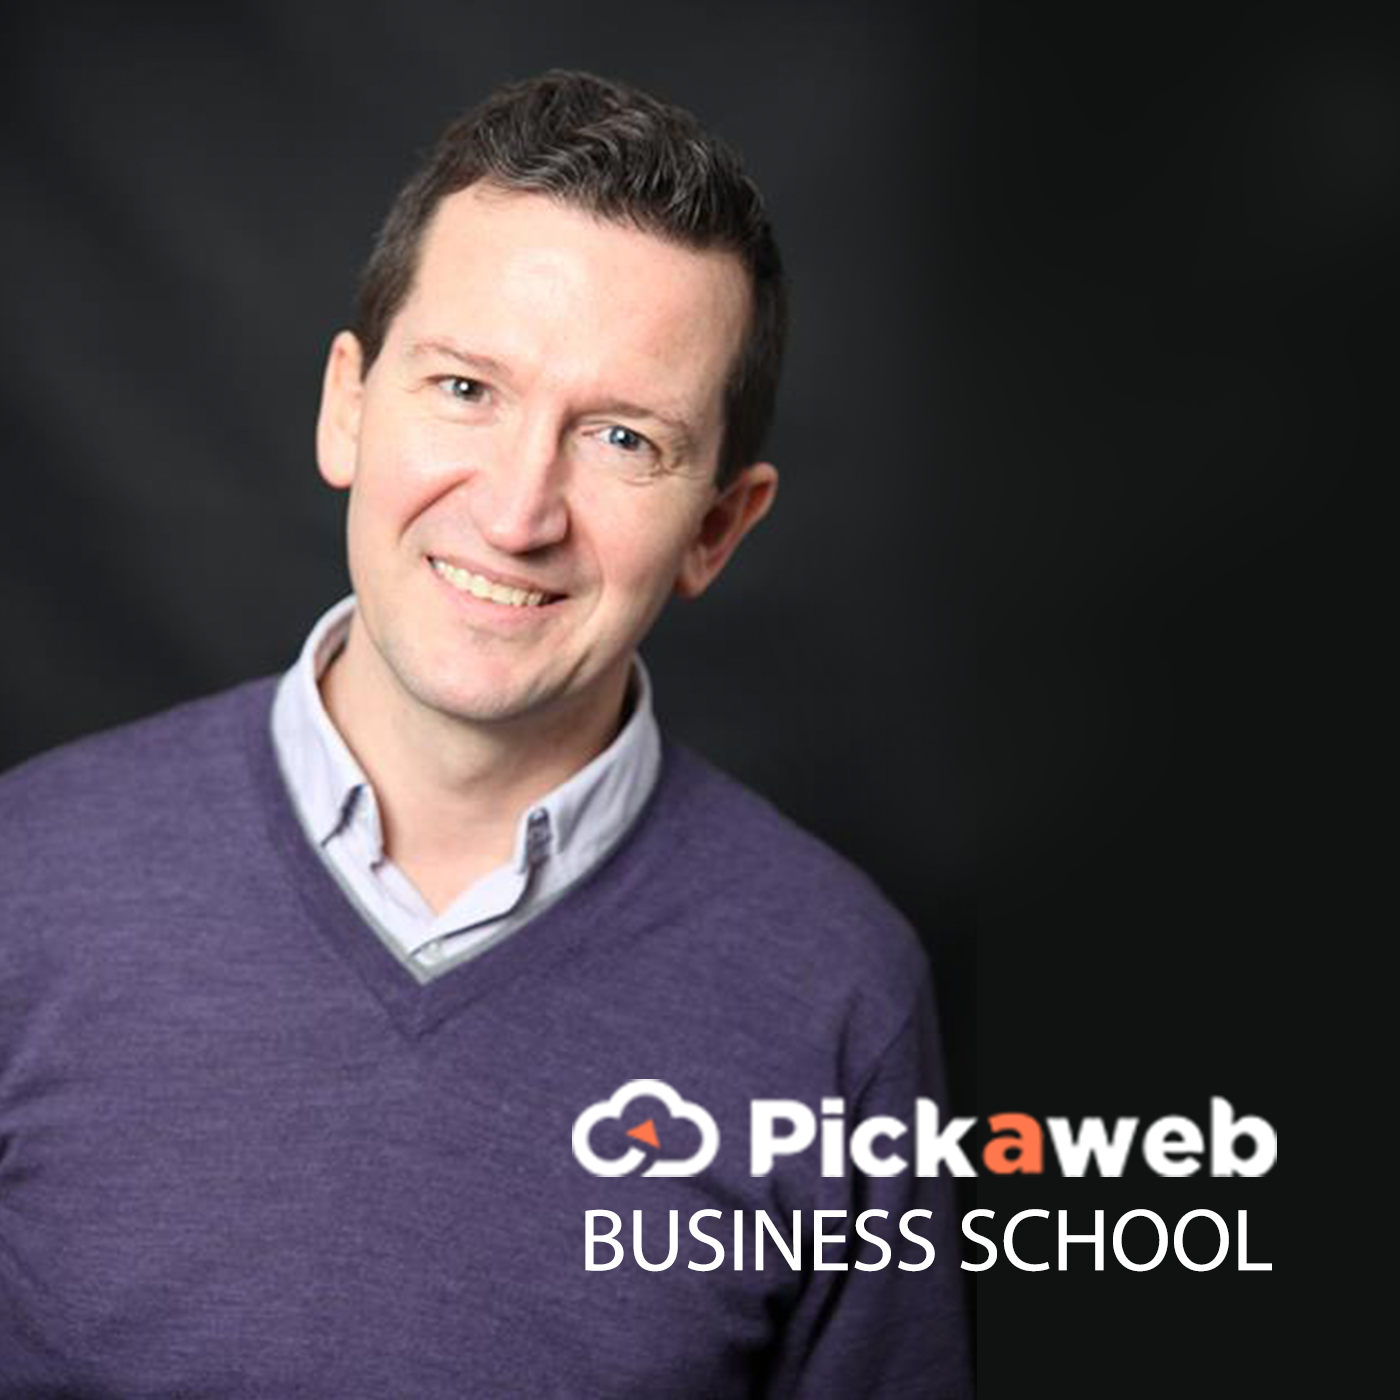 Pickaweb Business School